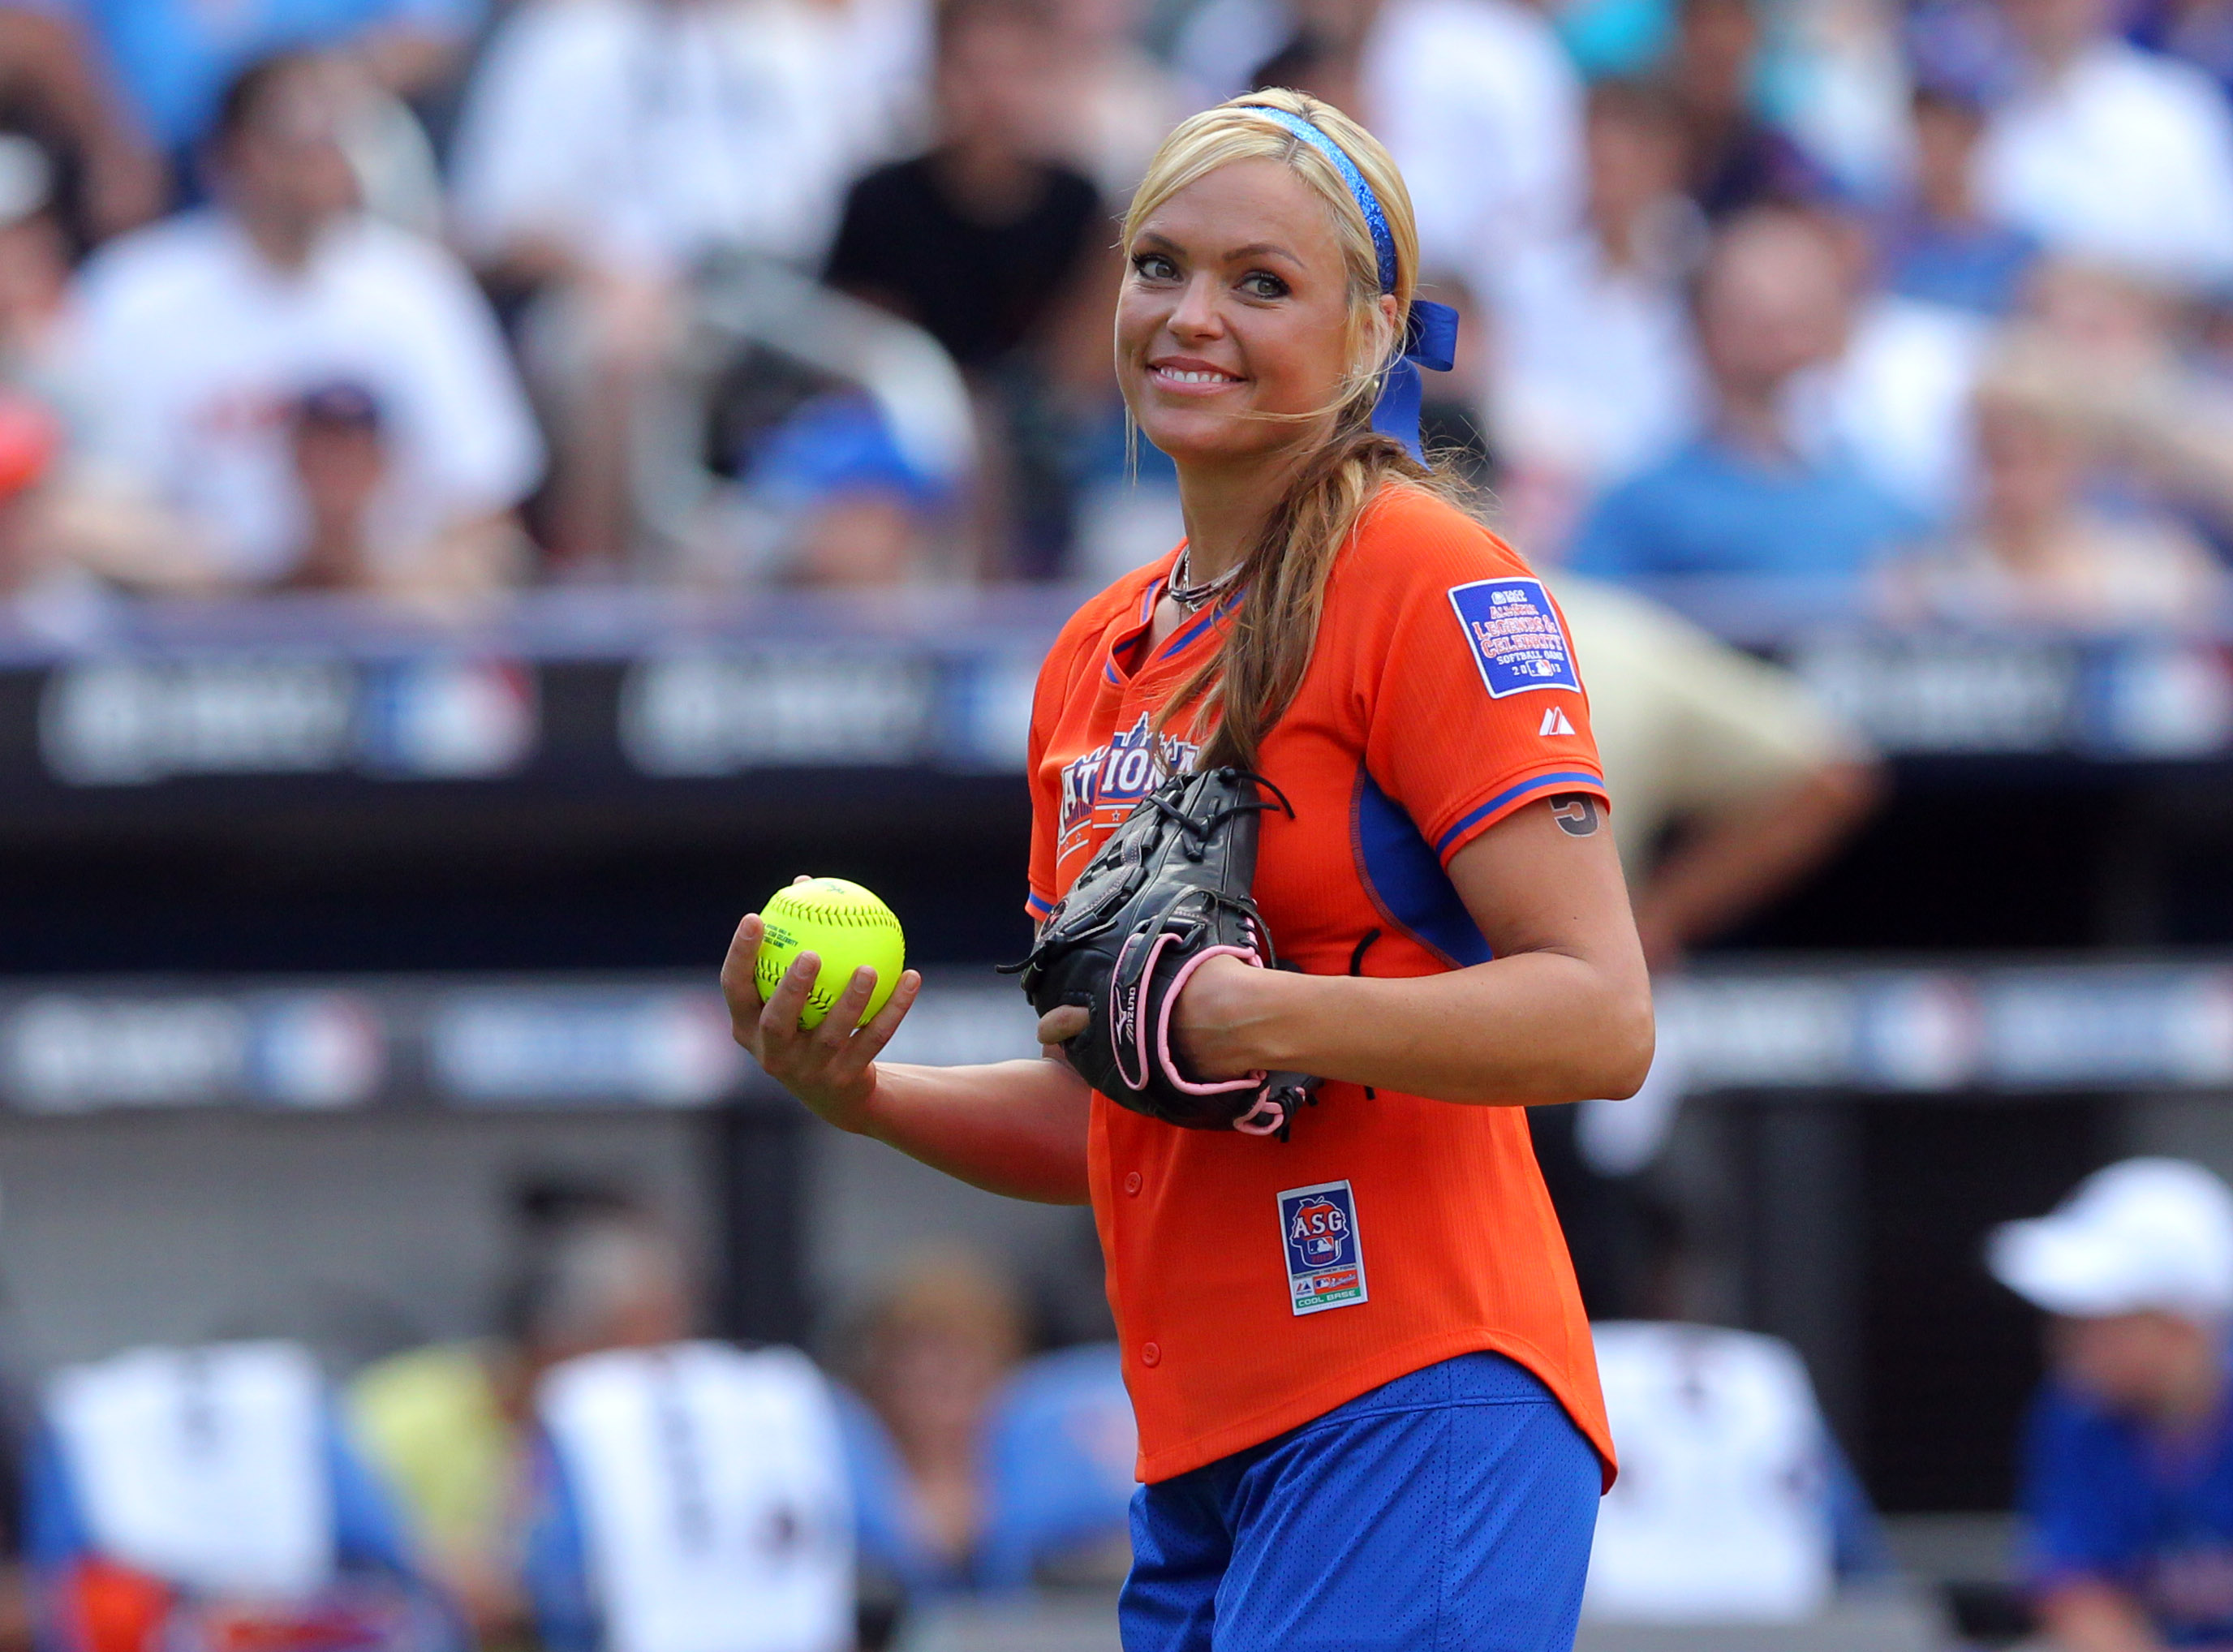 Former USA softball player Jennie Finch pitched during 2013 All Star Legends and Celebrity softball game at Citi Field. (Photo: Brad Penner, USA TODAY Sports)